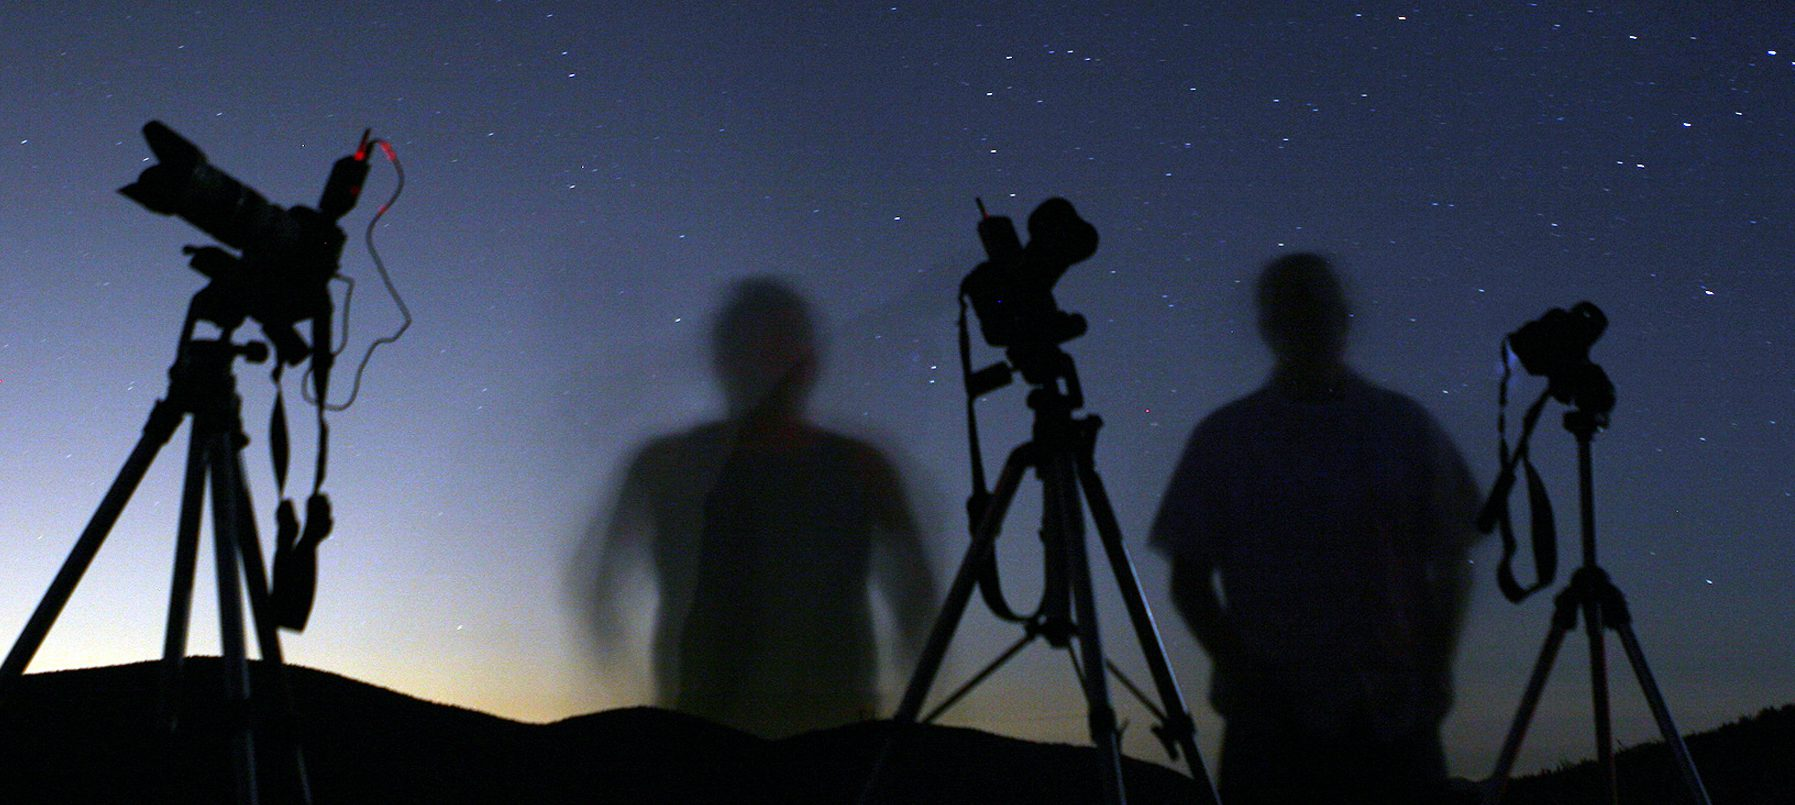 Photographers look into the dark skies to capture a shot during the Perseid Meteor shower in California.